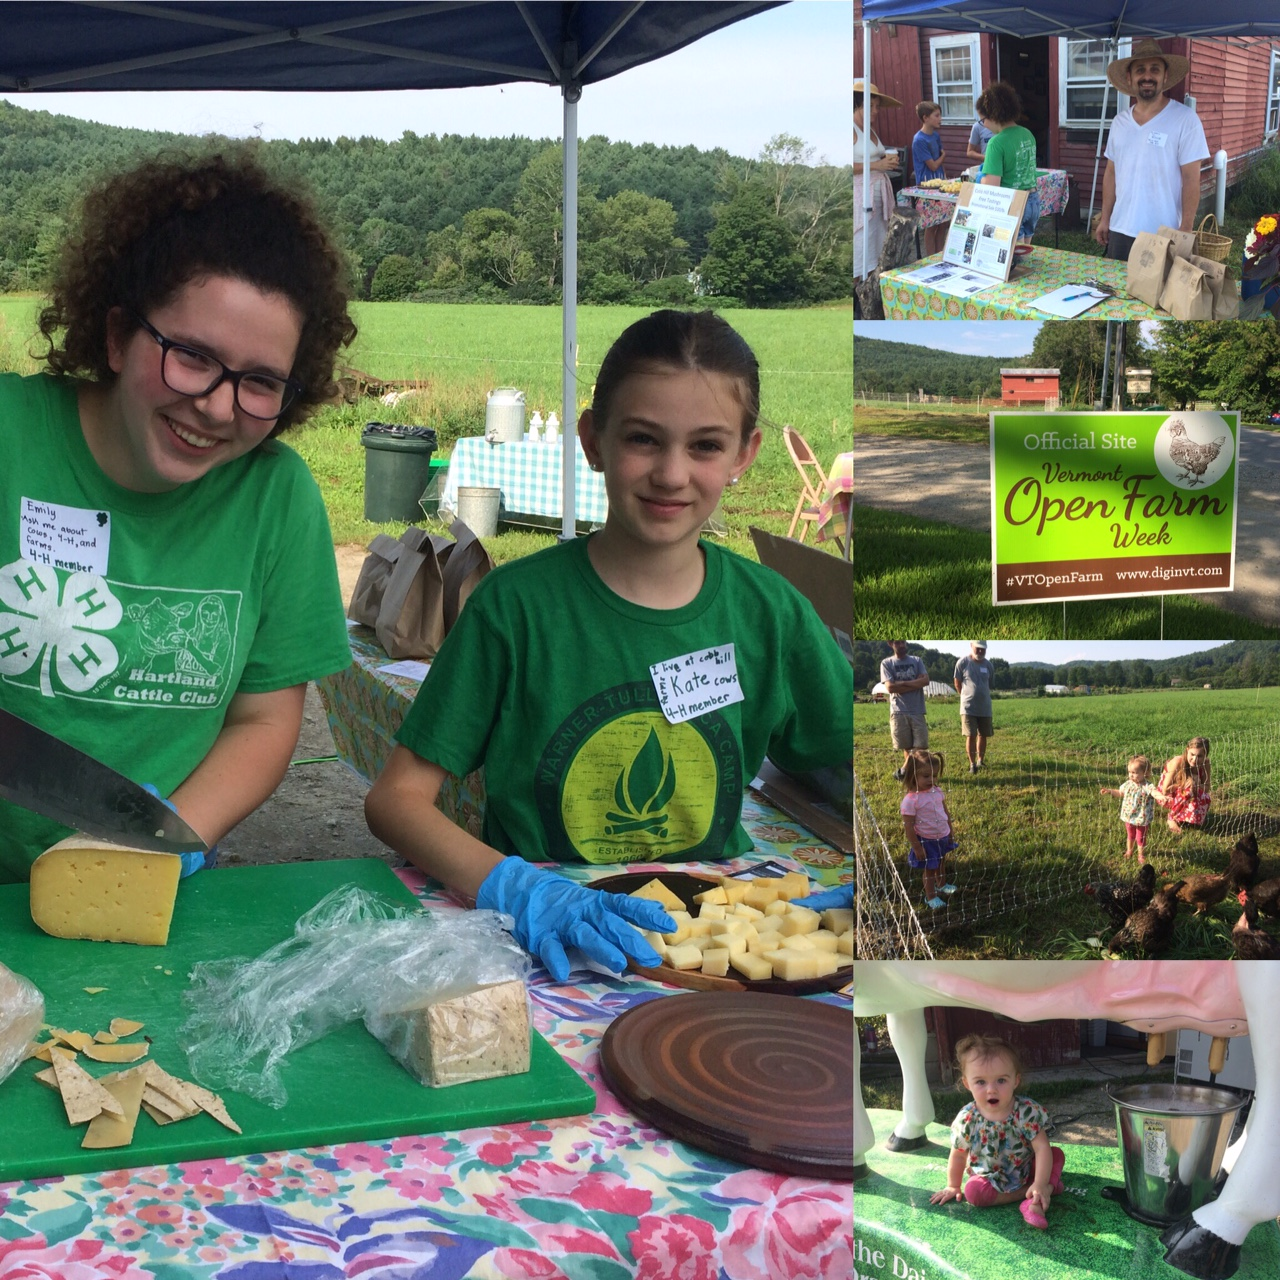 Cheese tastings, mushroom Pâté, honey, maple butter, outdoor oven-fired pita, lemonade stand, chickens...